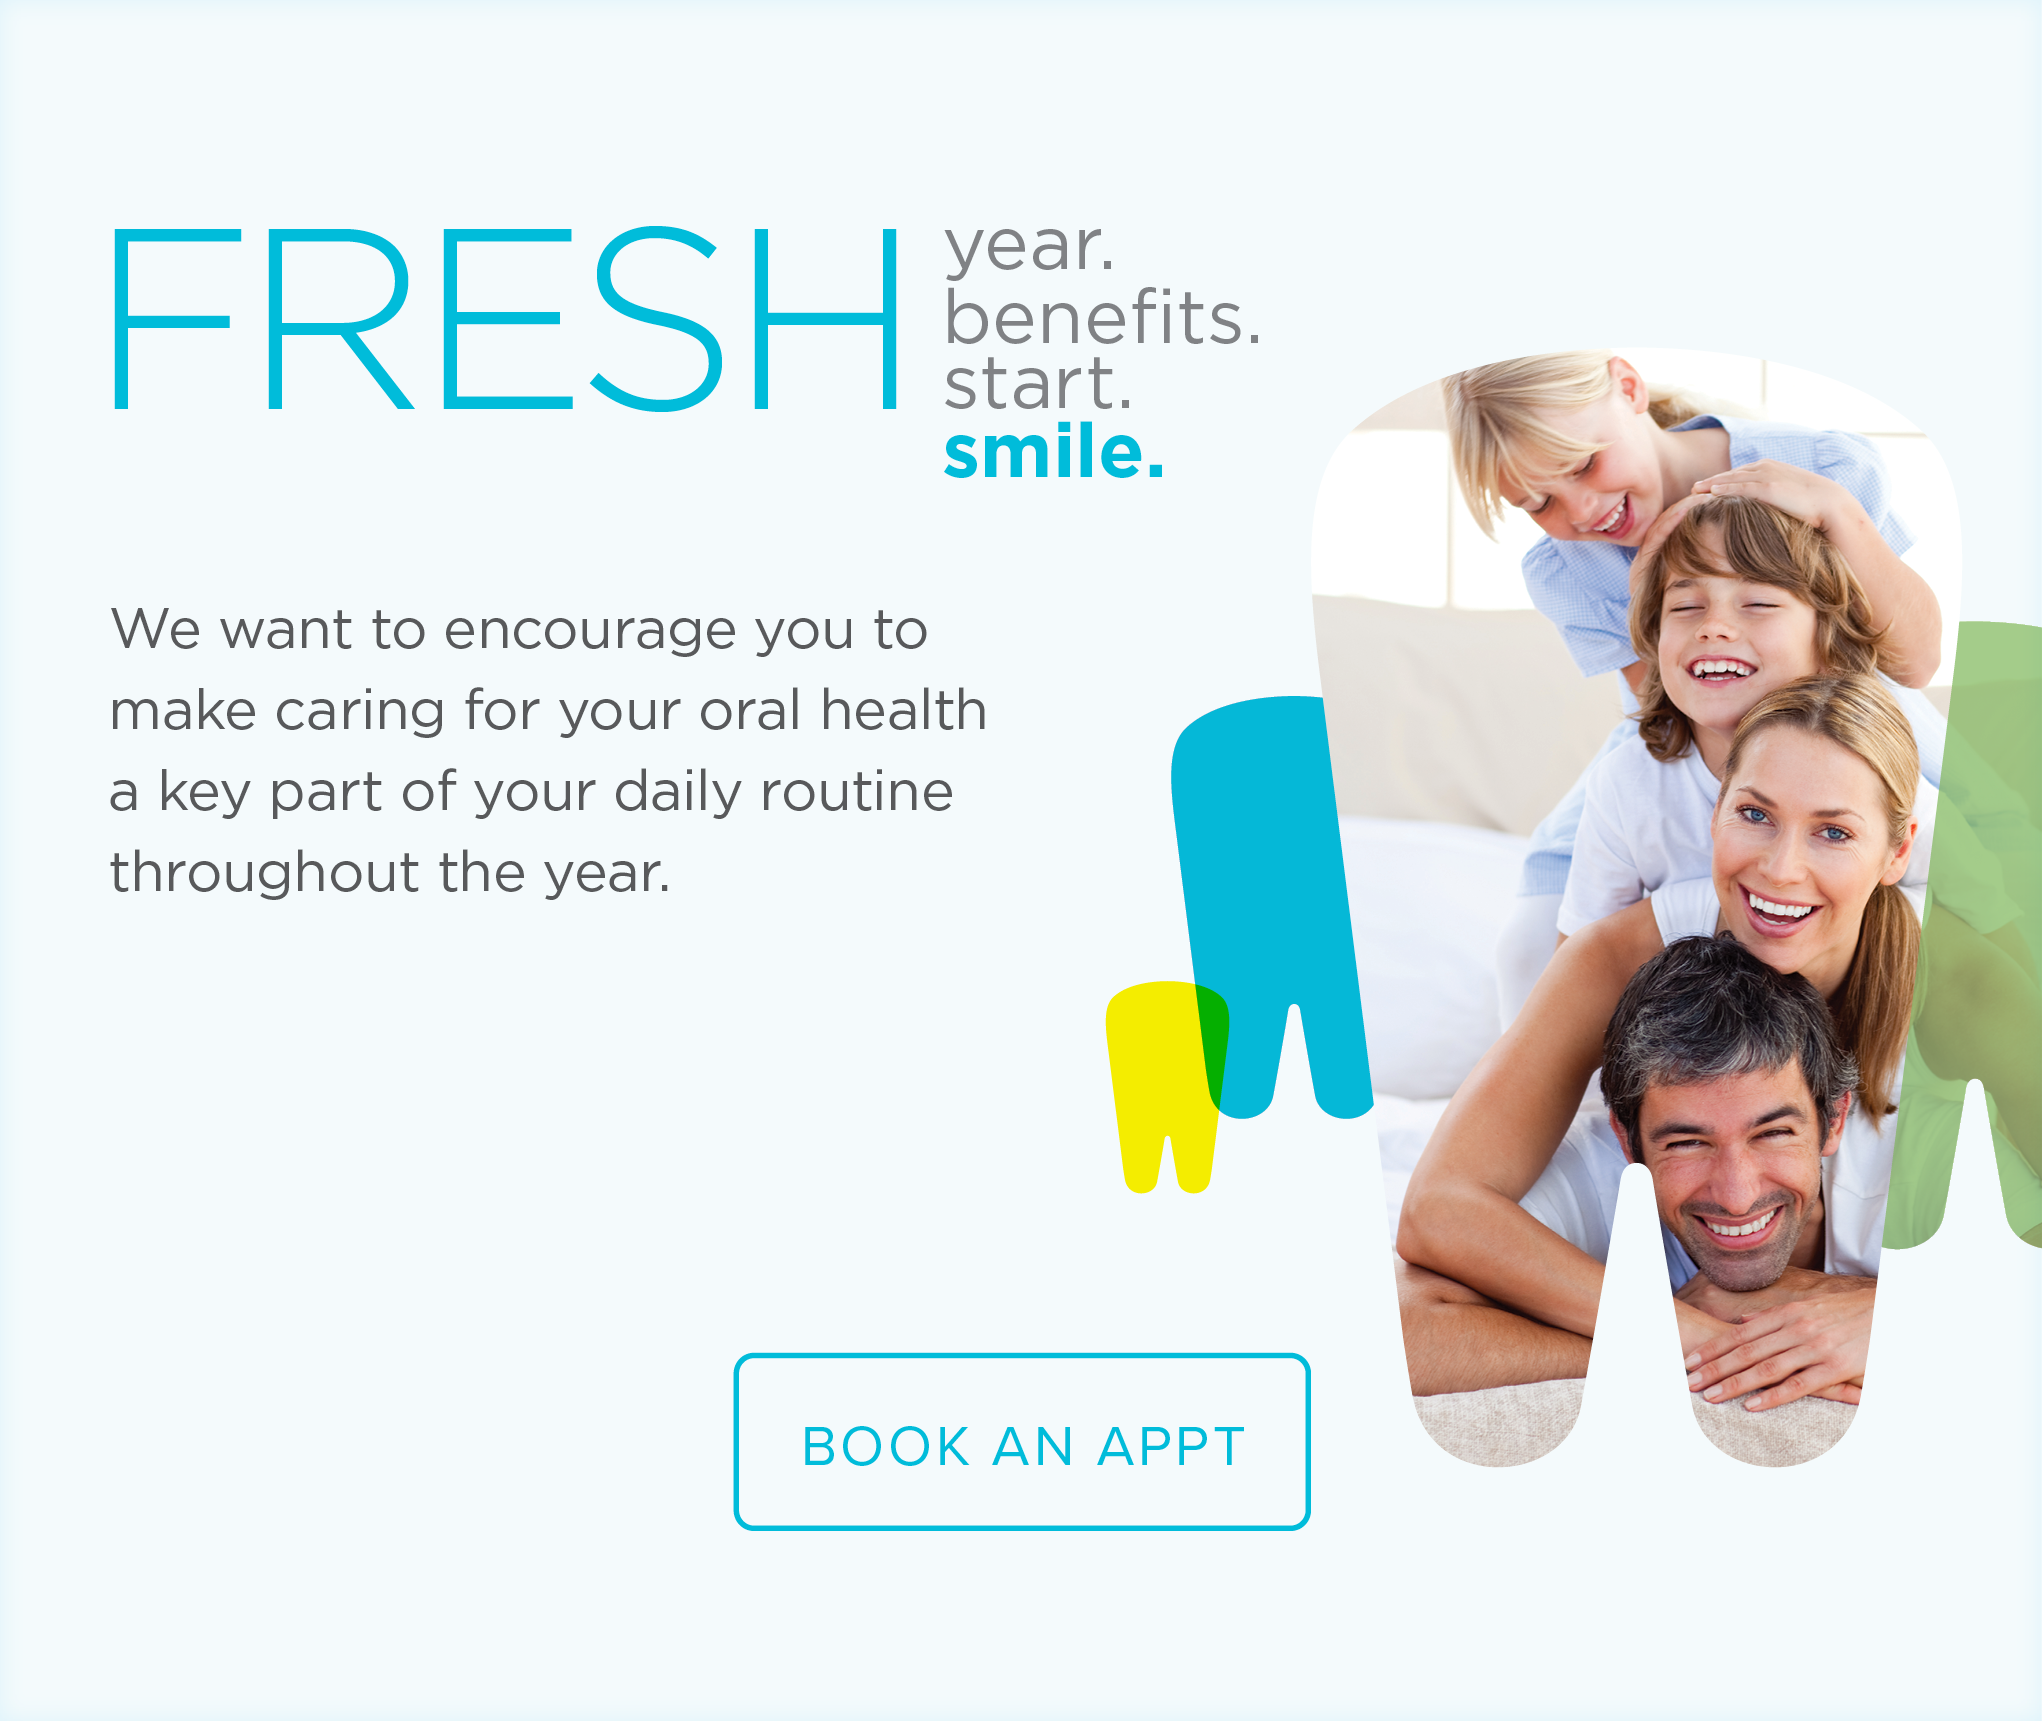 Fallon Dental Group - Make the Most of Your Benefits